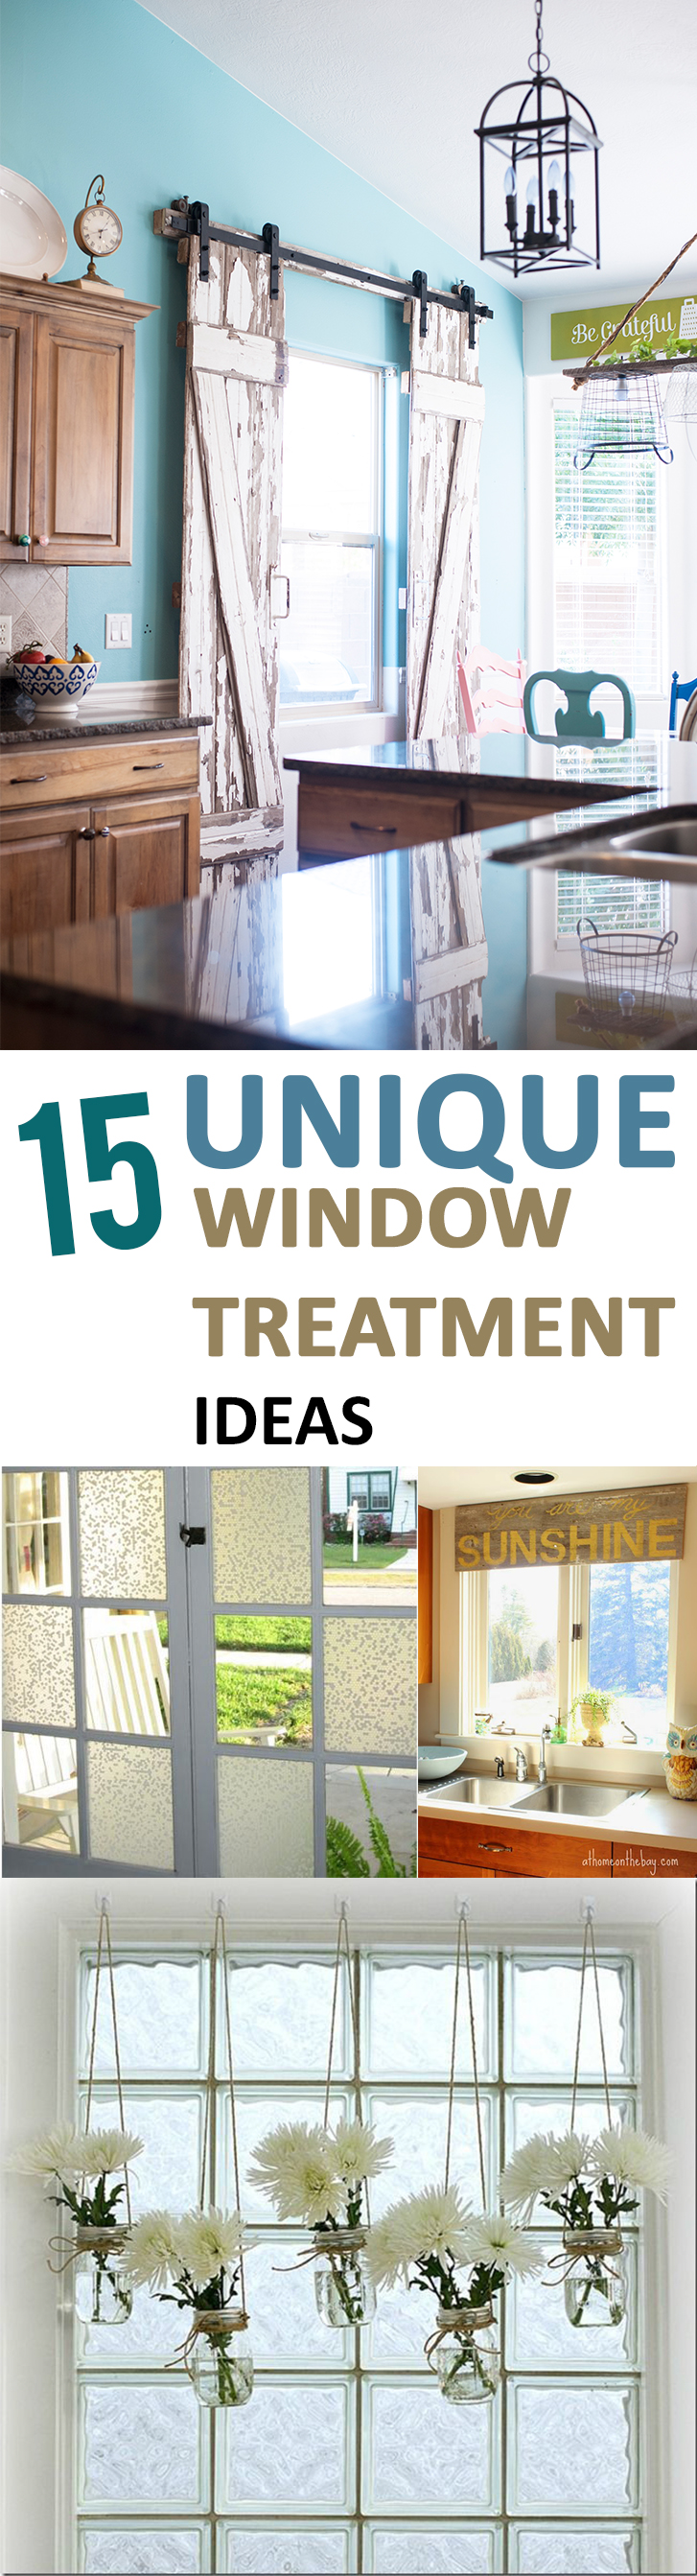 Unique Window Treatment Ideas 10